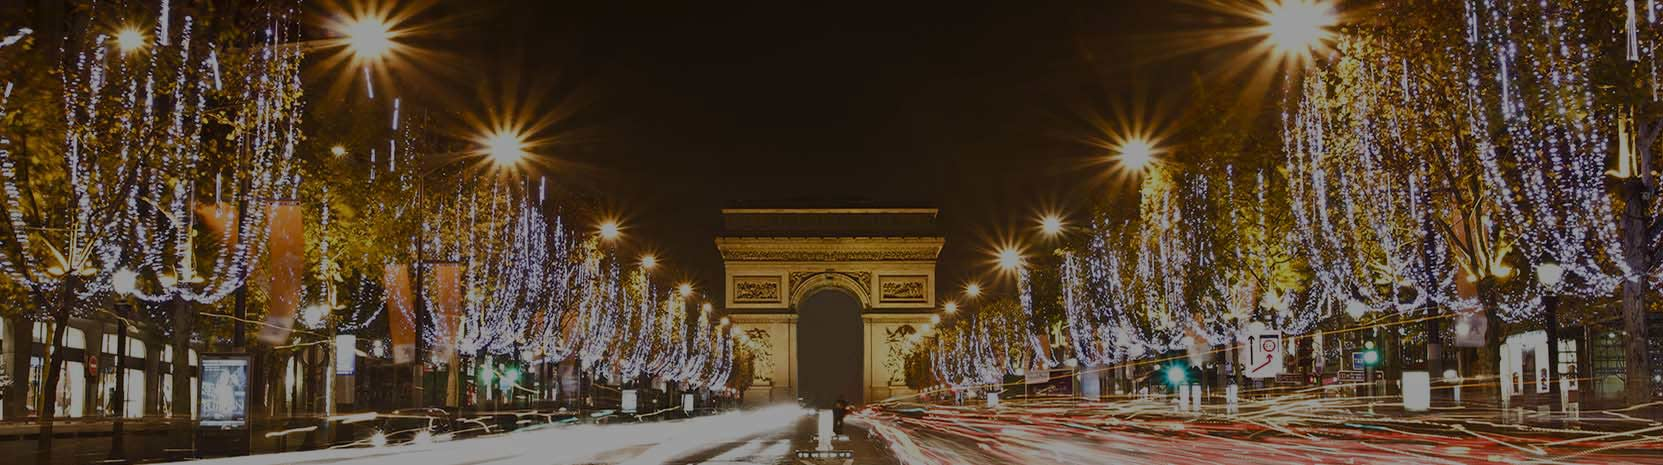 Blog Image De Noel.What To Do In Paris At Christmas Lodgis Blog